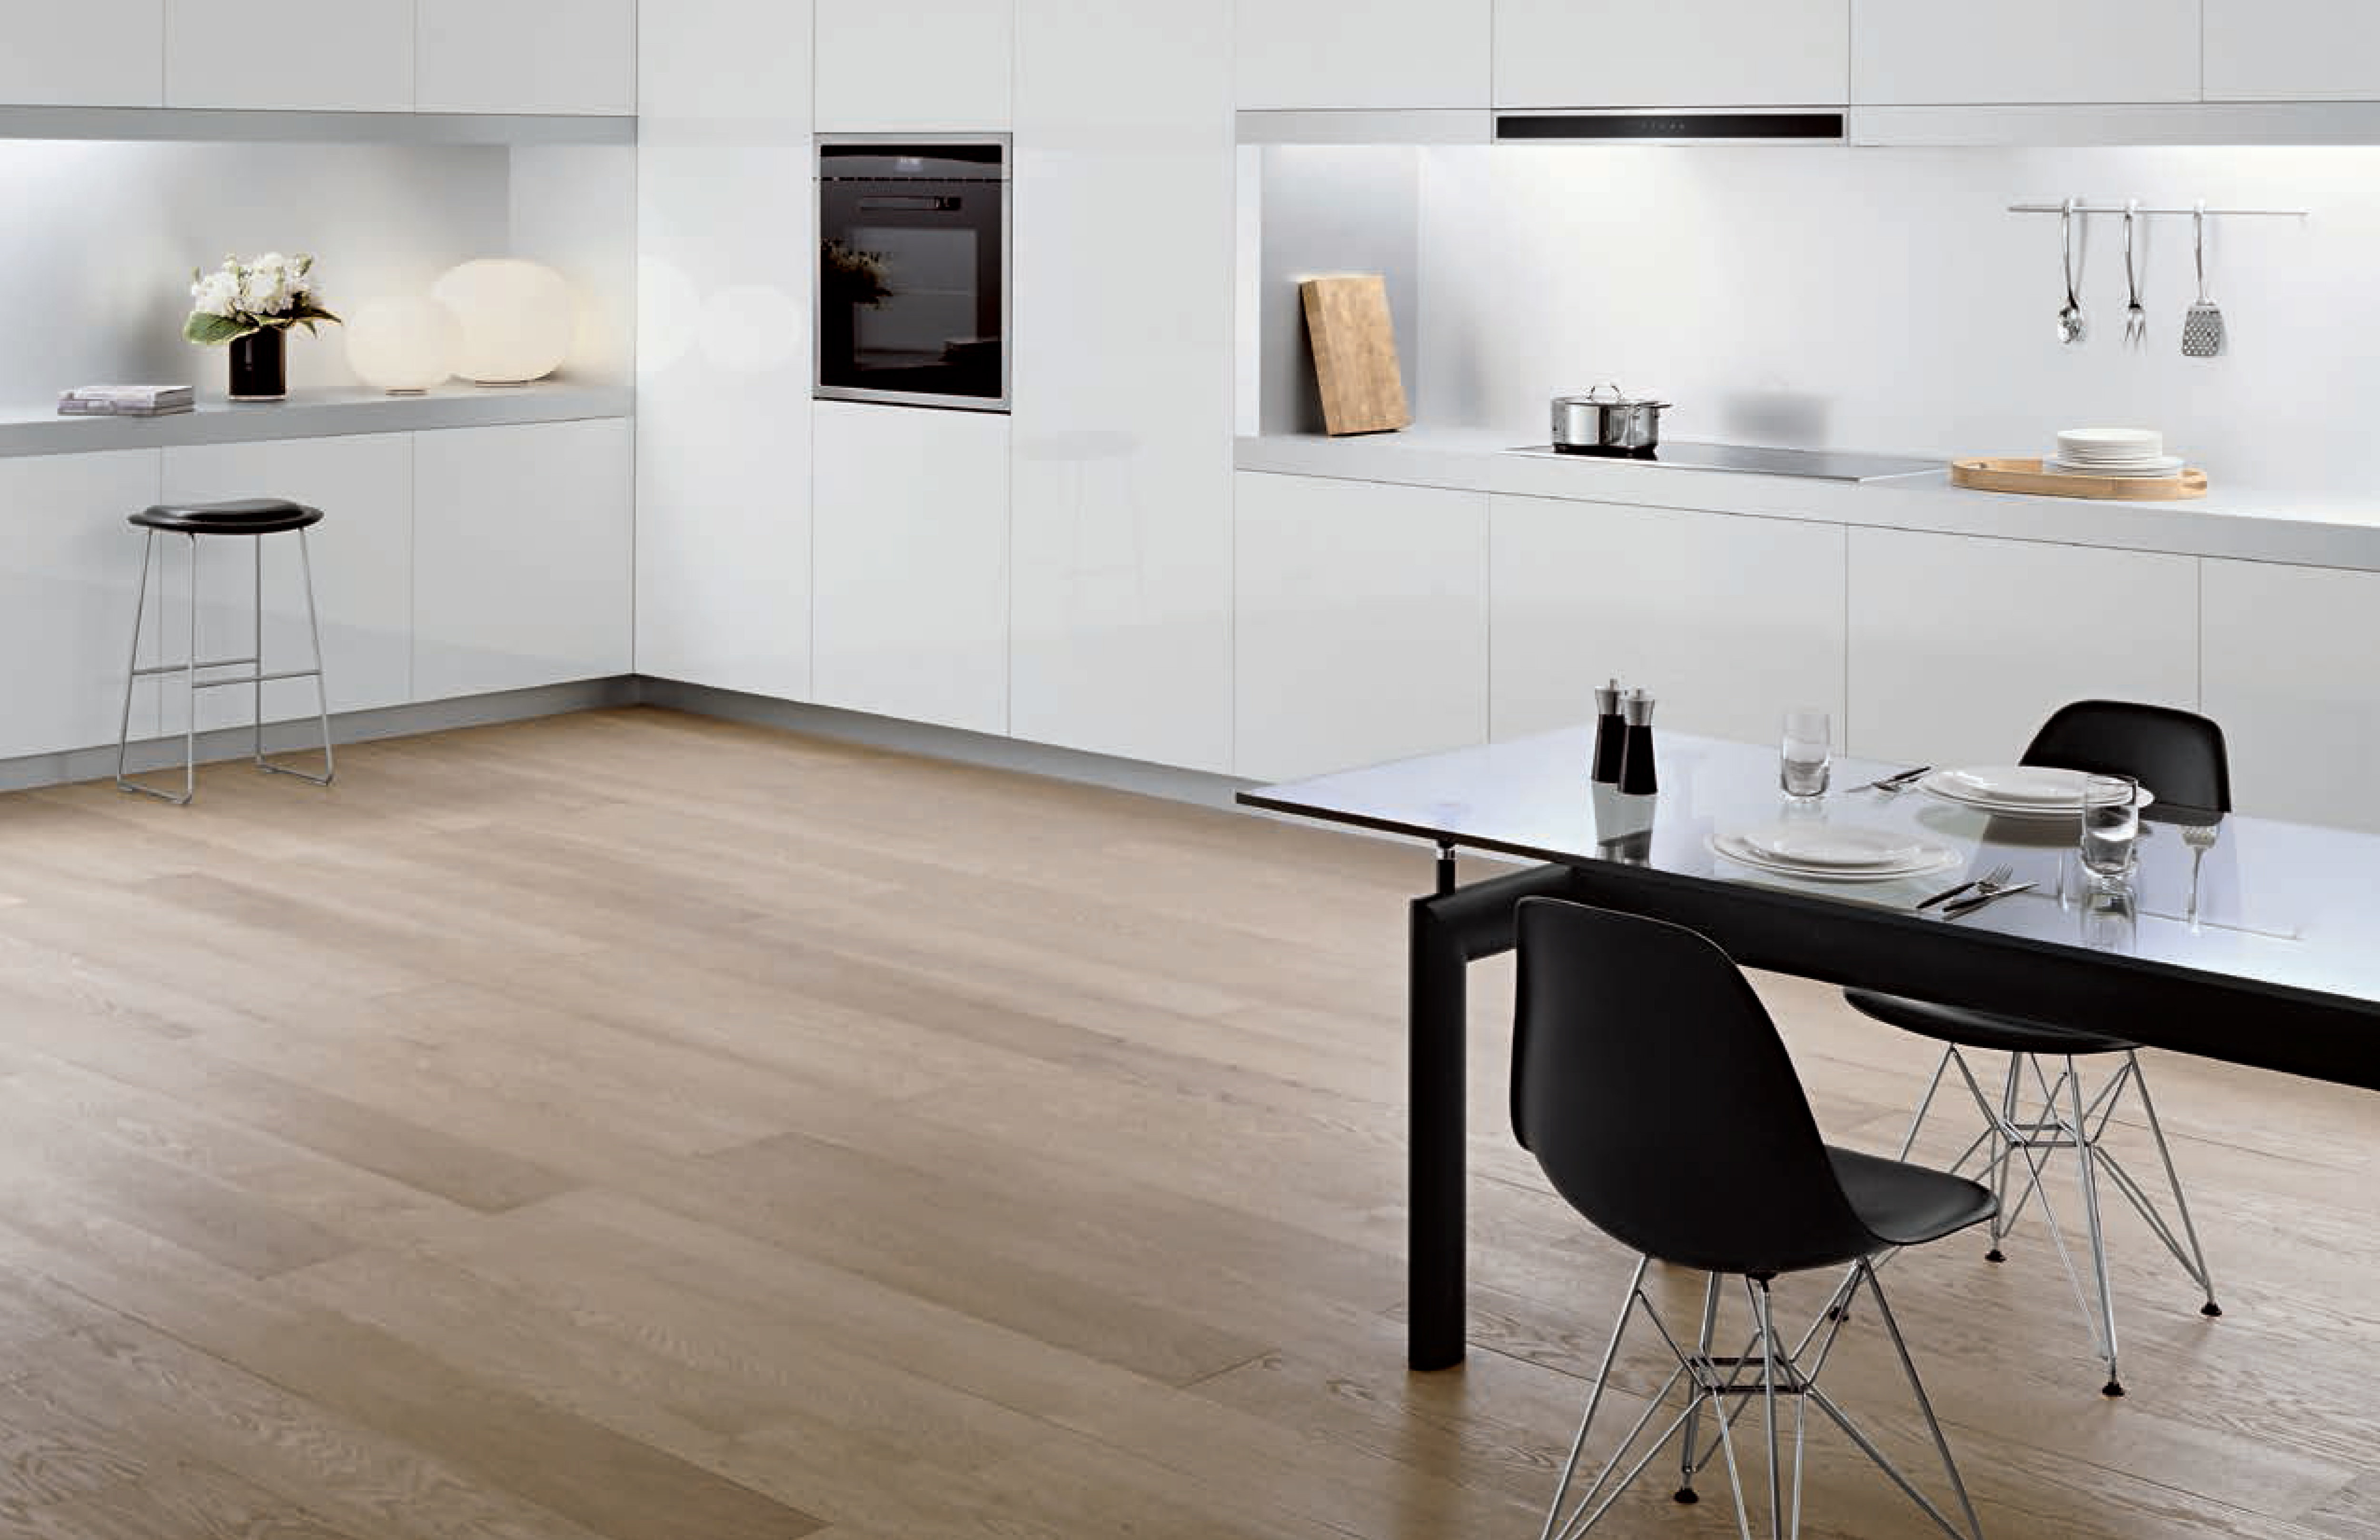 A modern look using Bertazzoni's Design Series appliances.